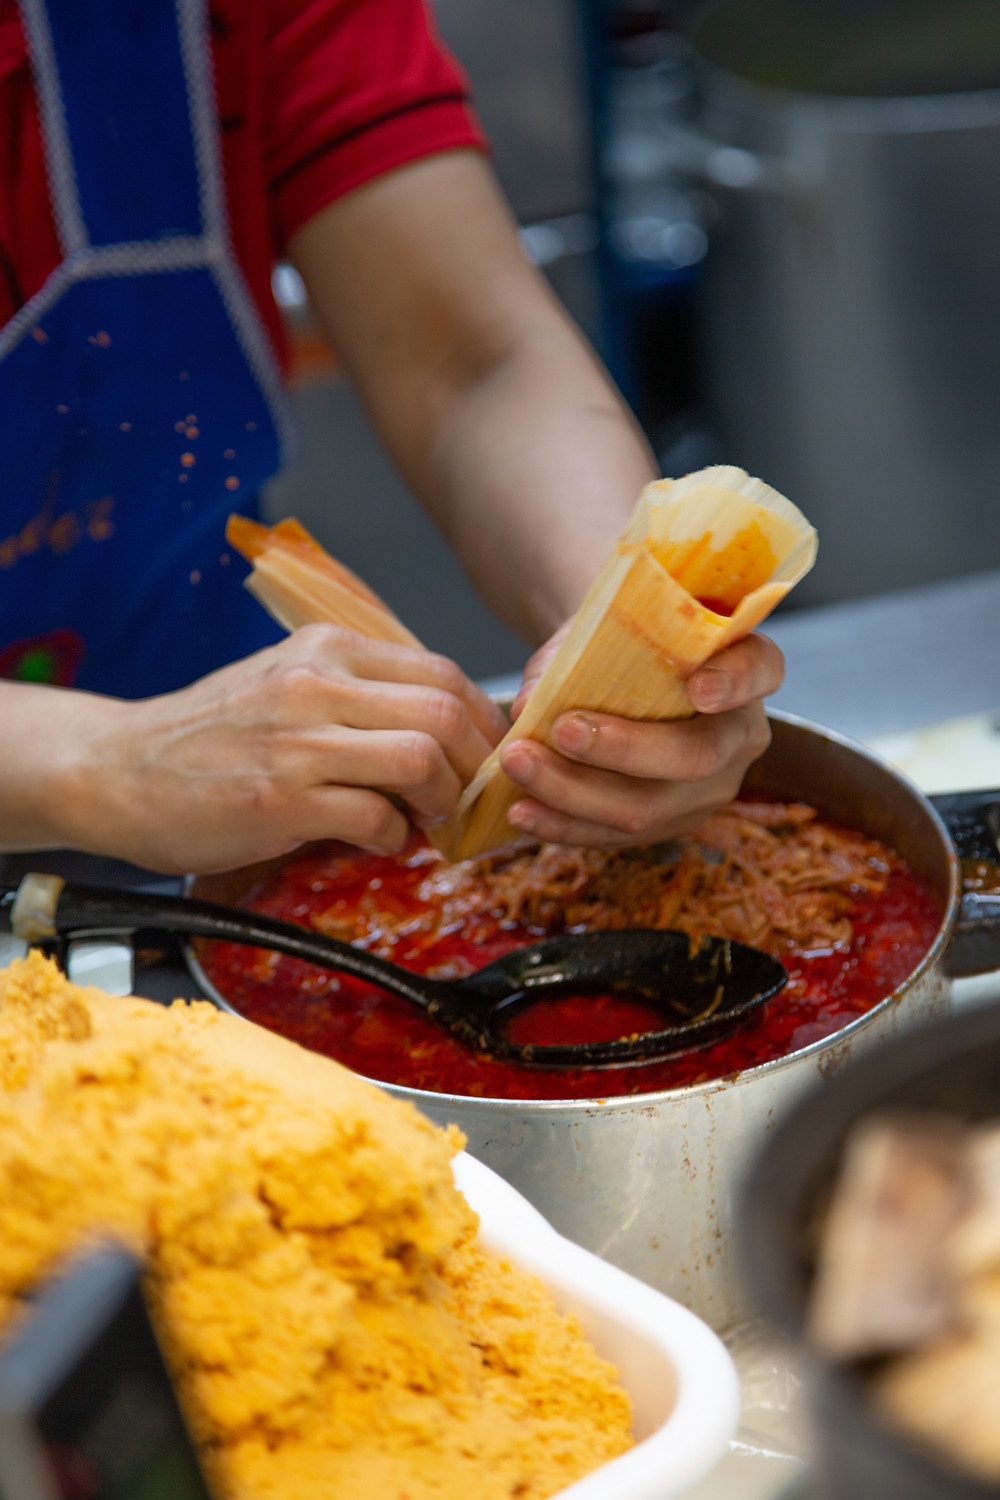 Preparing Mexican tamales with corn husk at Paraiso Tropical.